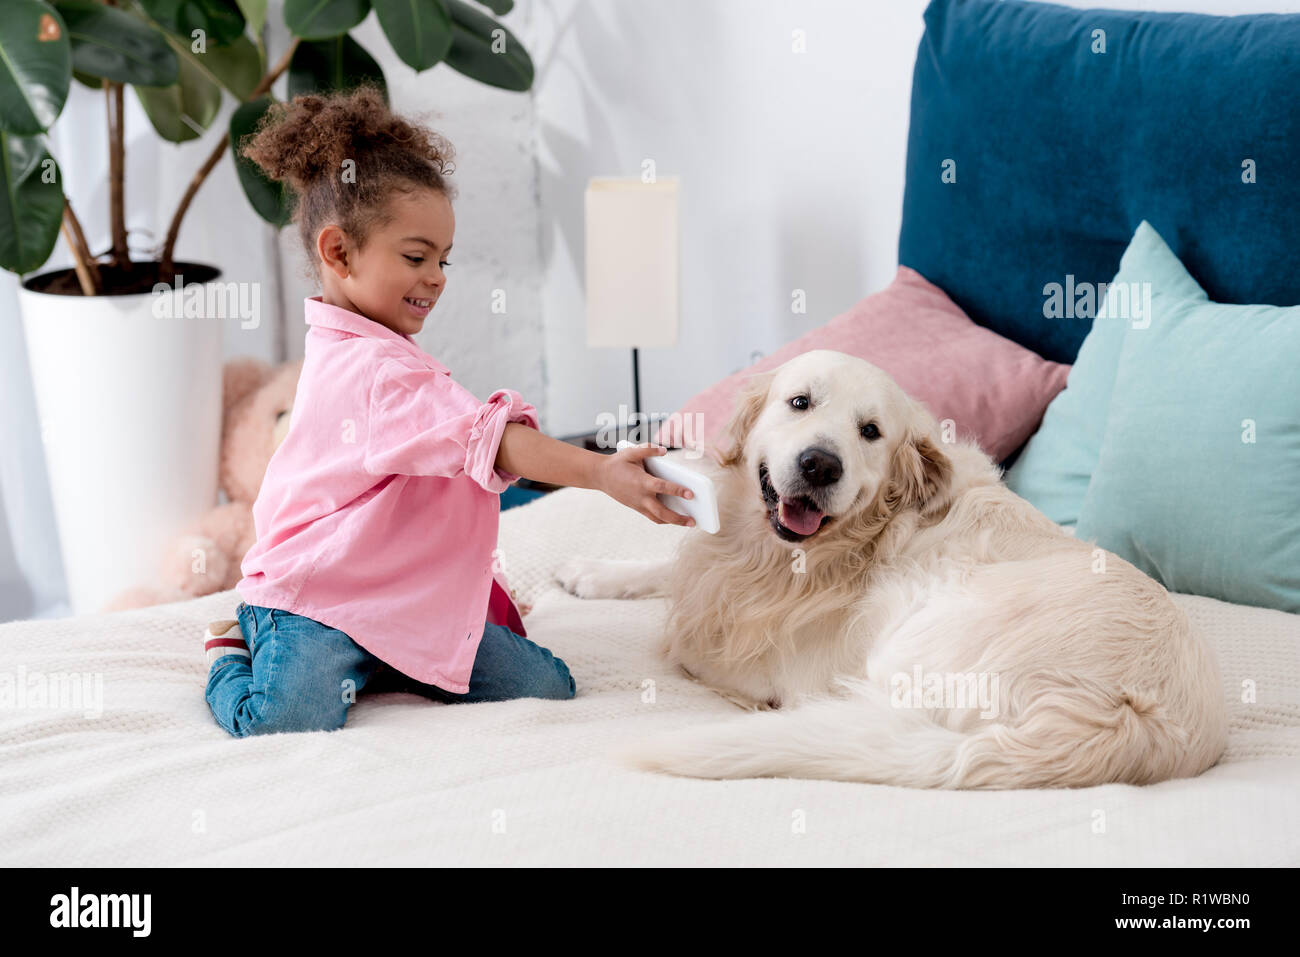 adorable african american child sitting on the bed and shows smartphone screen to dog - Stock Image